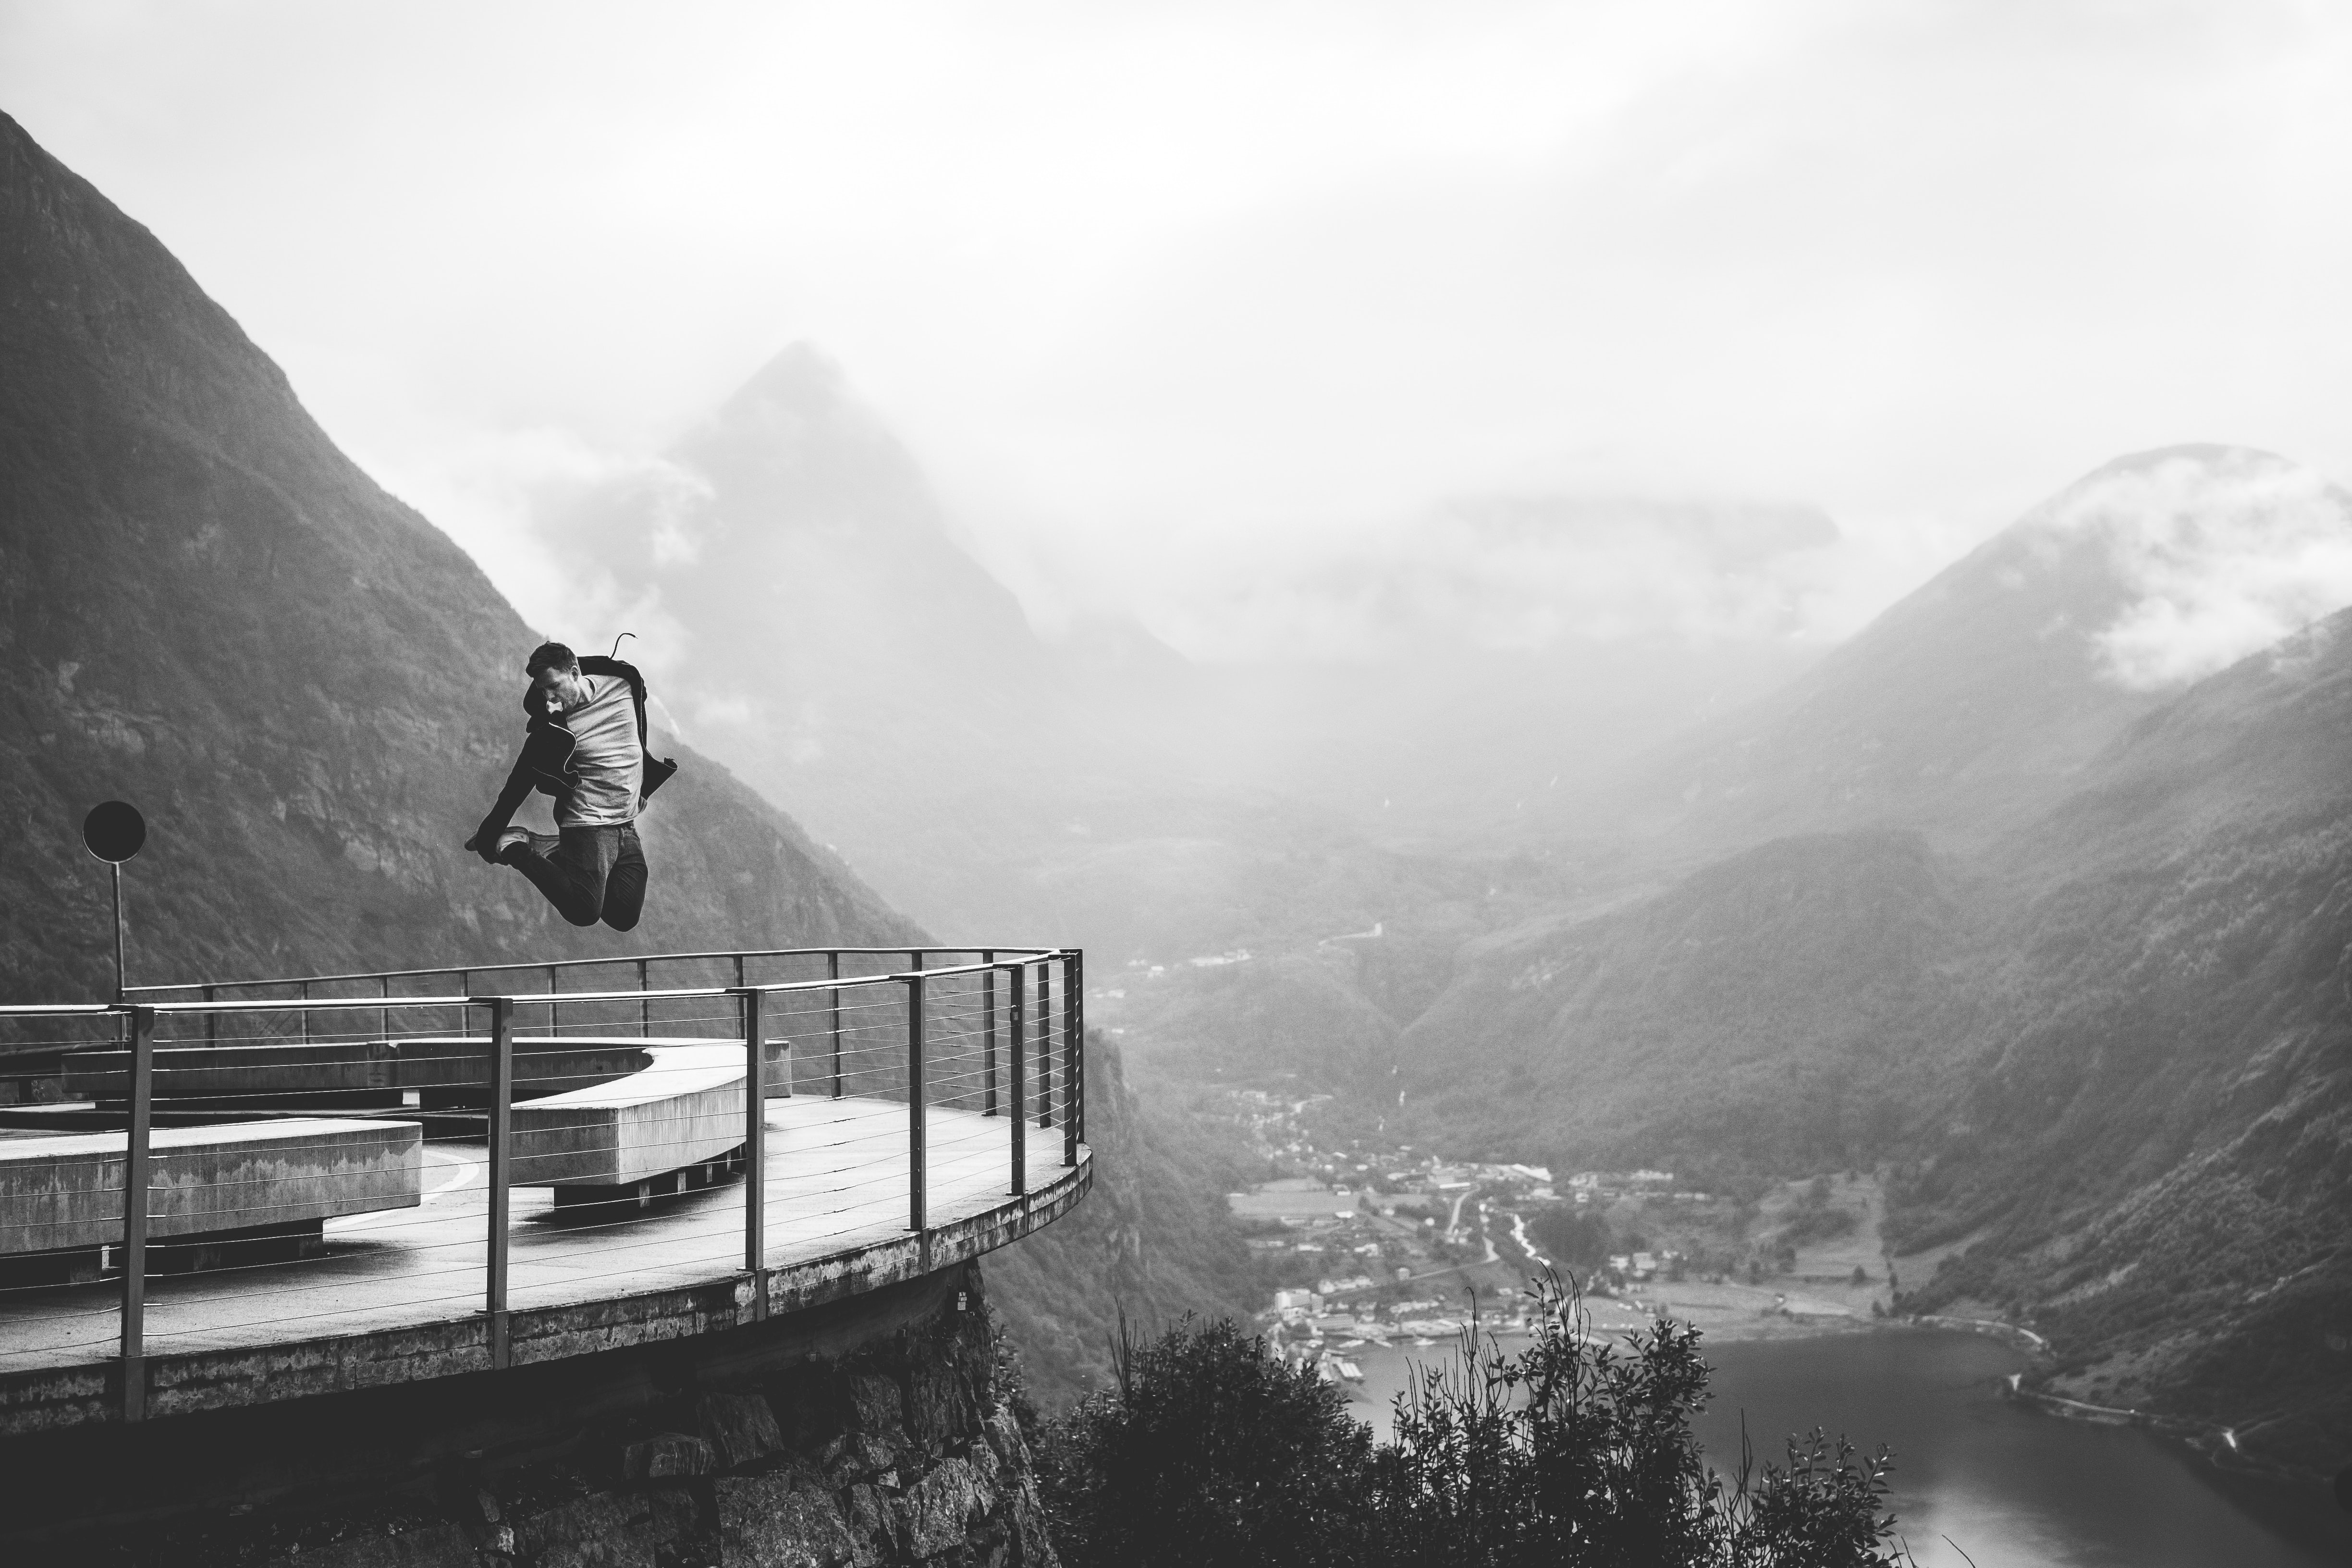 A black and white shot of a man jumping above a rail of an observation platform in a mountainous landscape